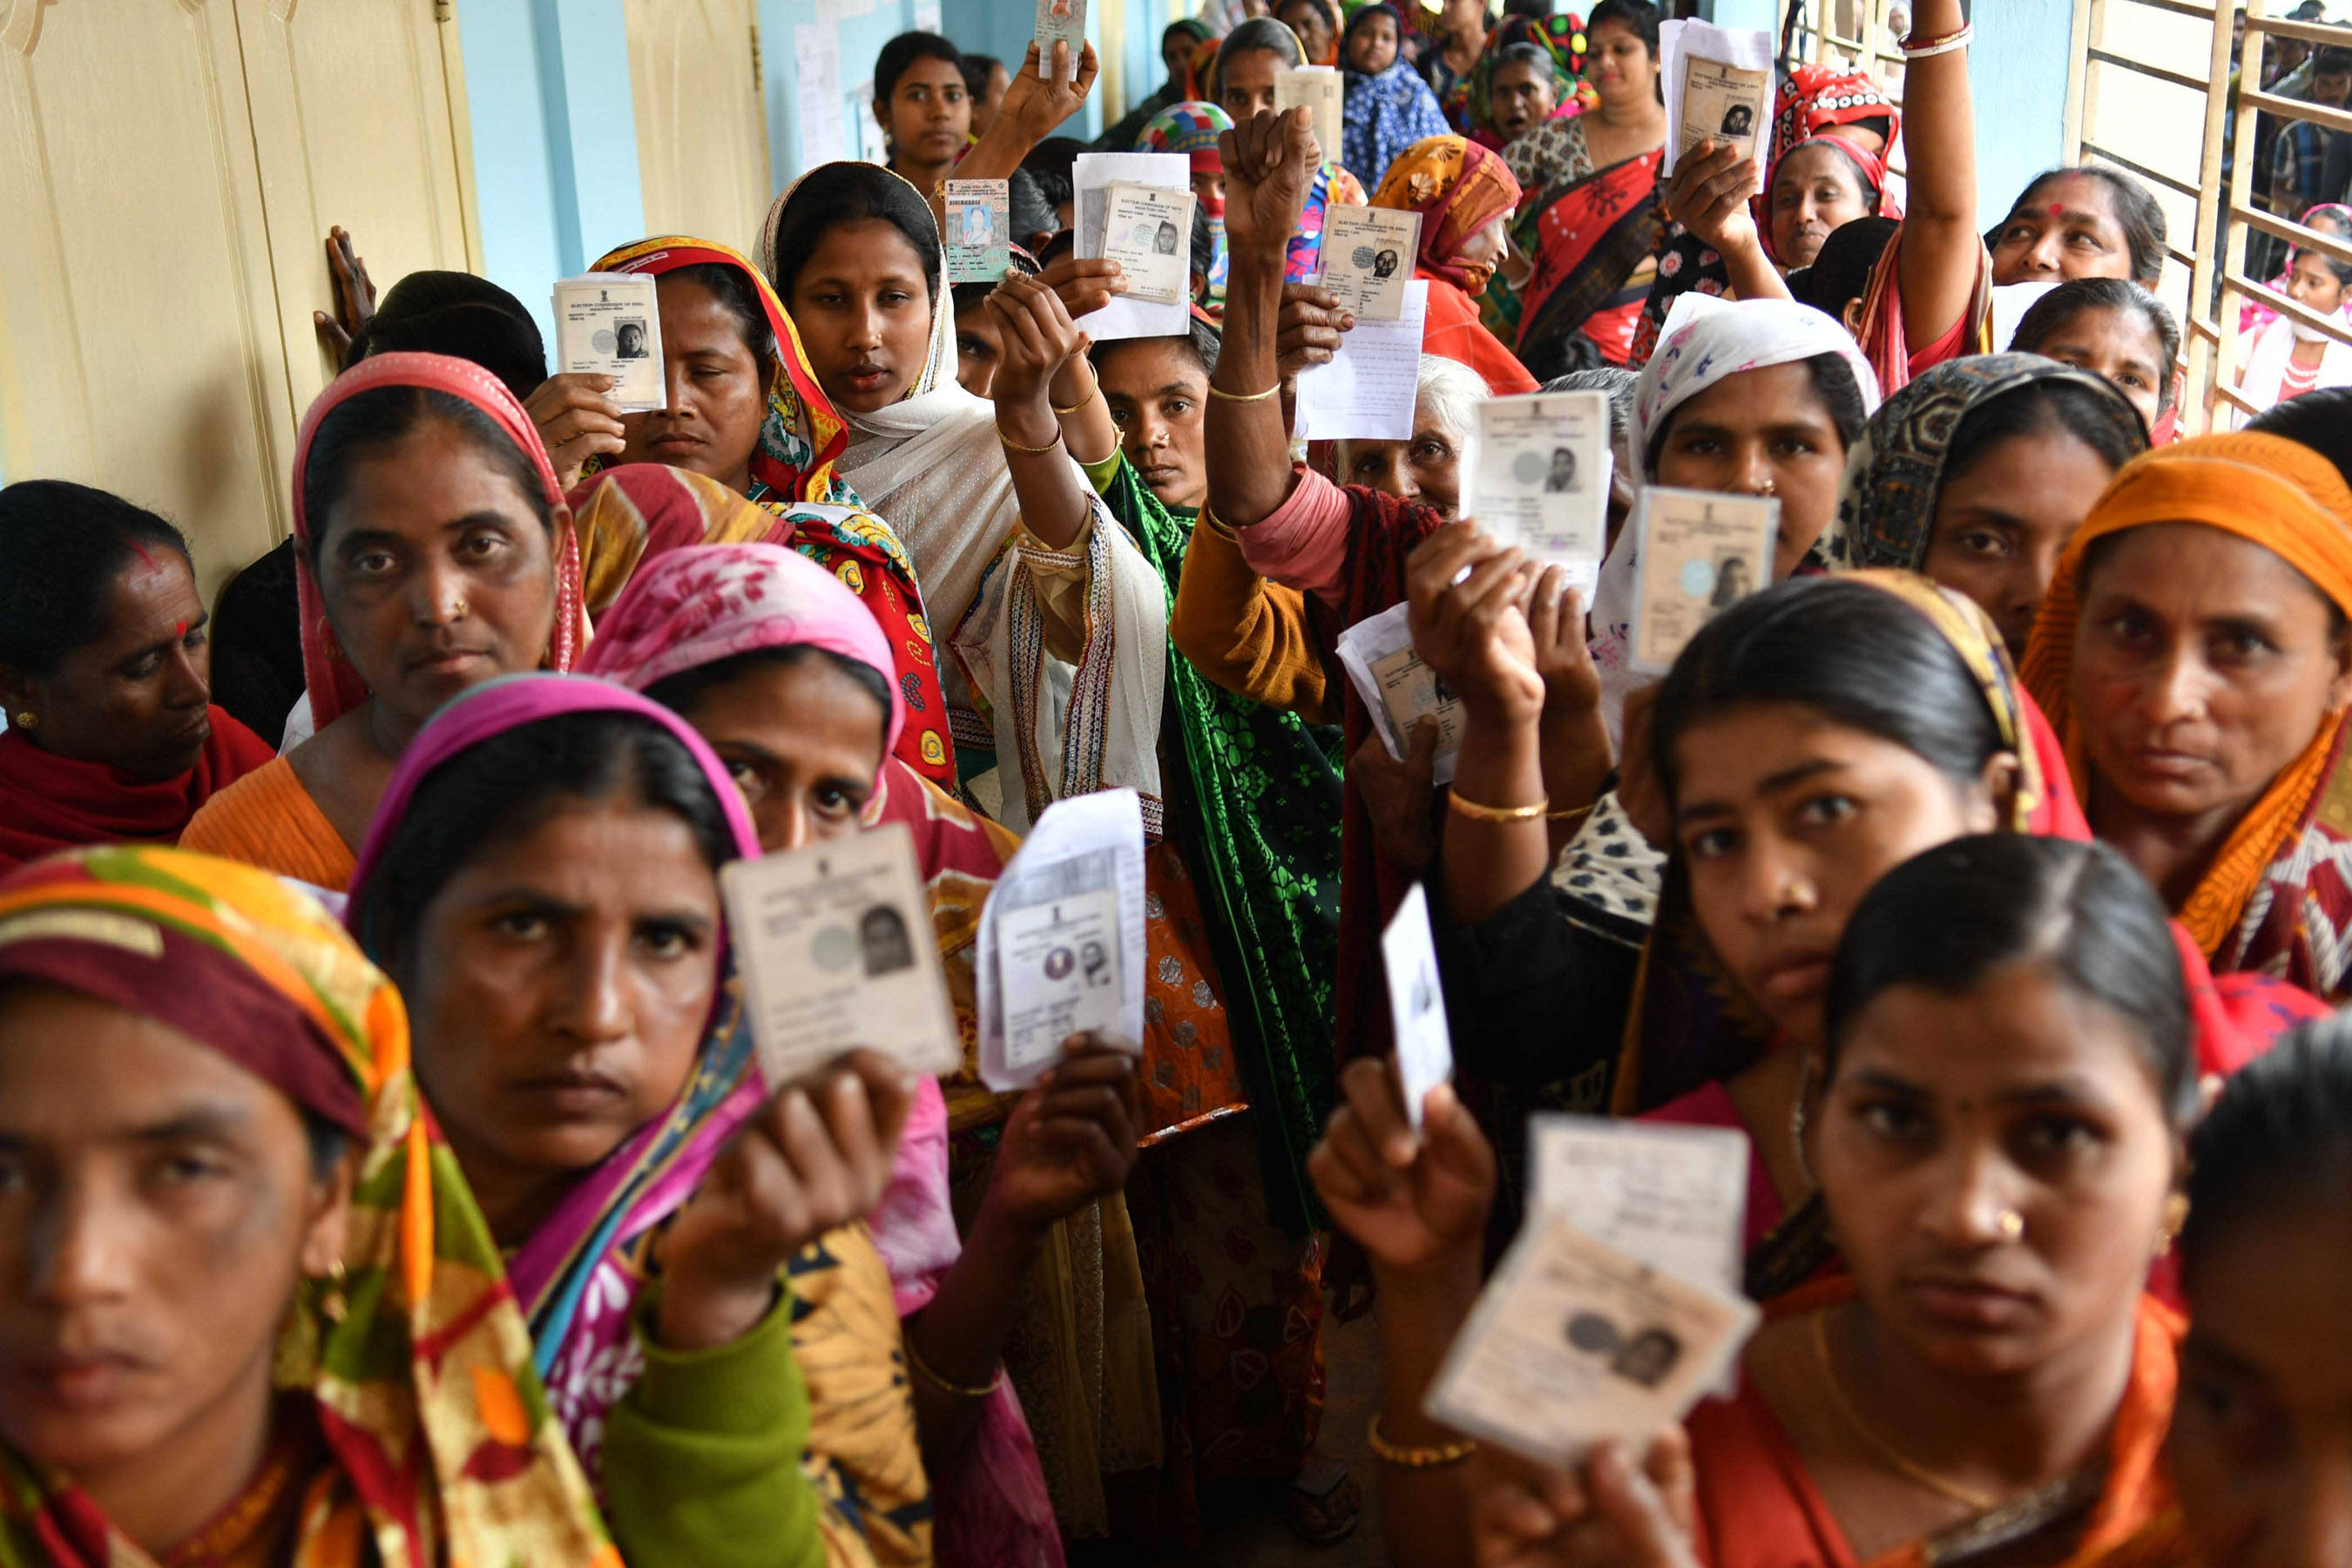 File photo of voters in Agartala. The 91st amendment extended the 25-year-old freeze on the total number and state-wise distribution of Lok Sabha seats until 2026 so that states that were successful in population control would not lose seats, and others would not gain at their expense